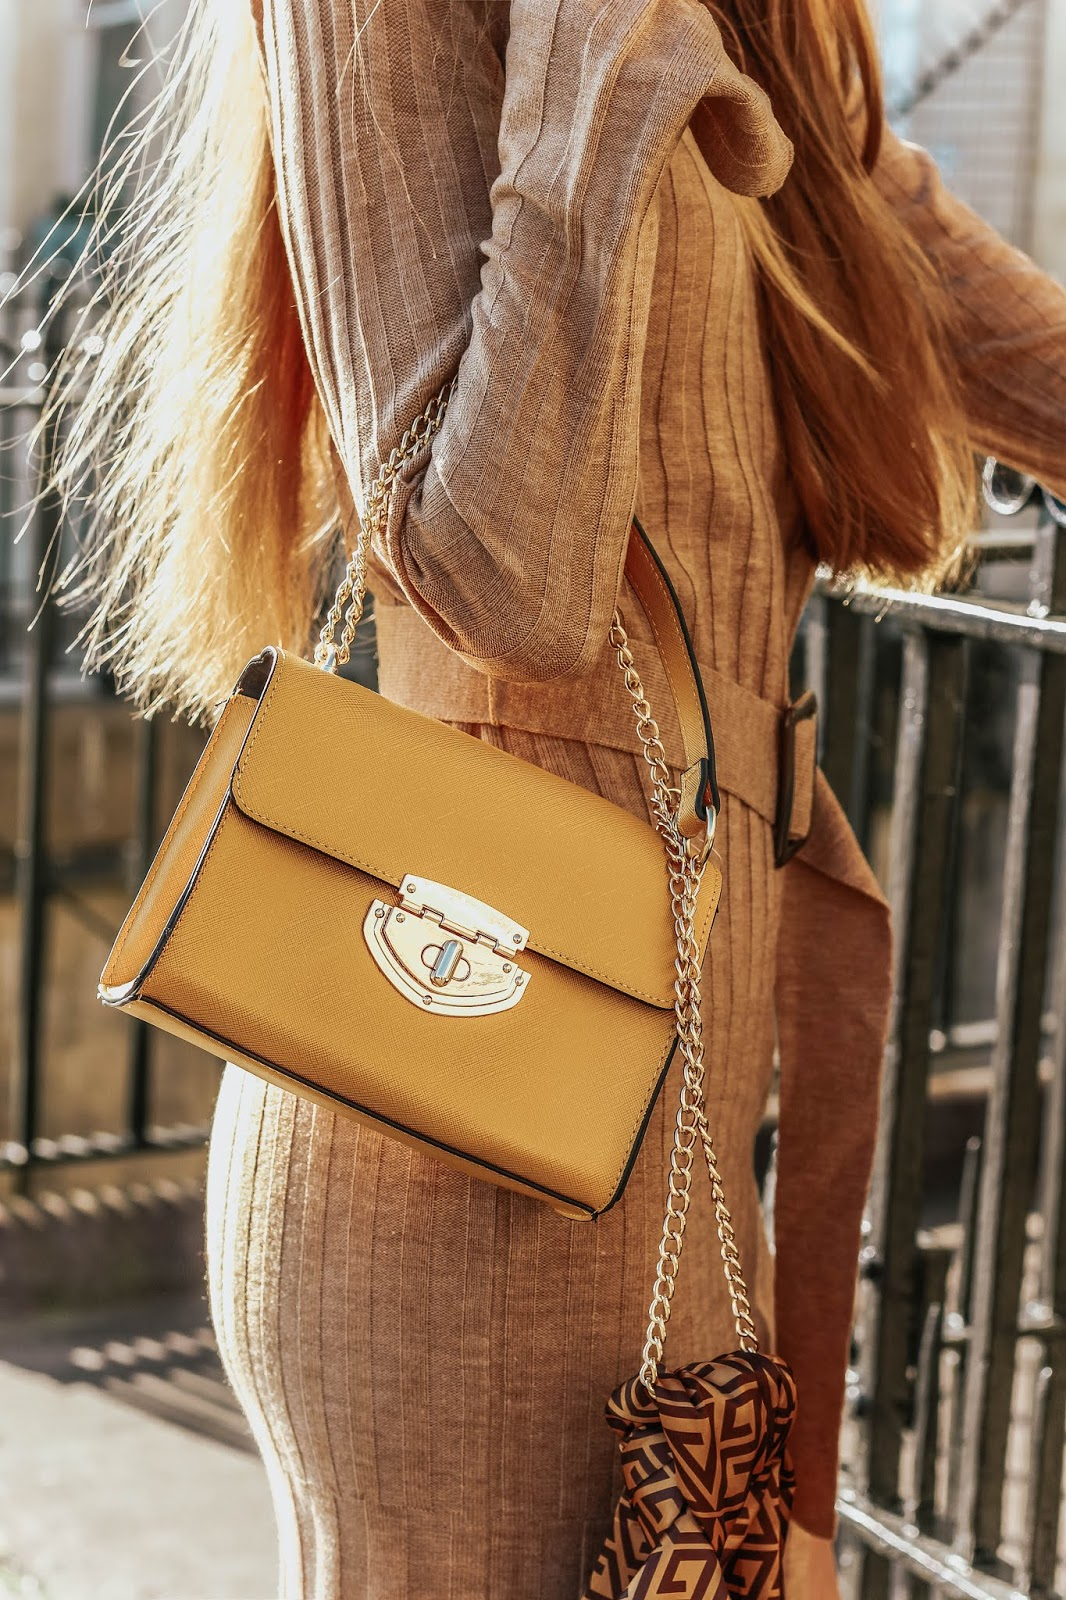 dorothy perkins yellow lock handbag 2019